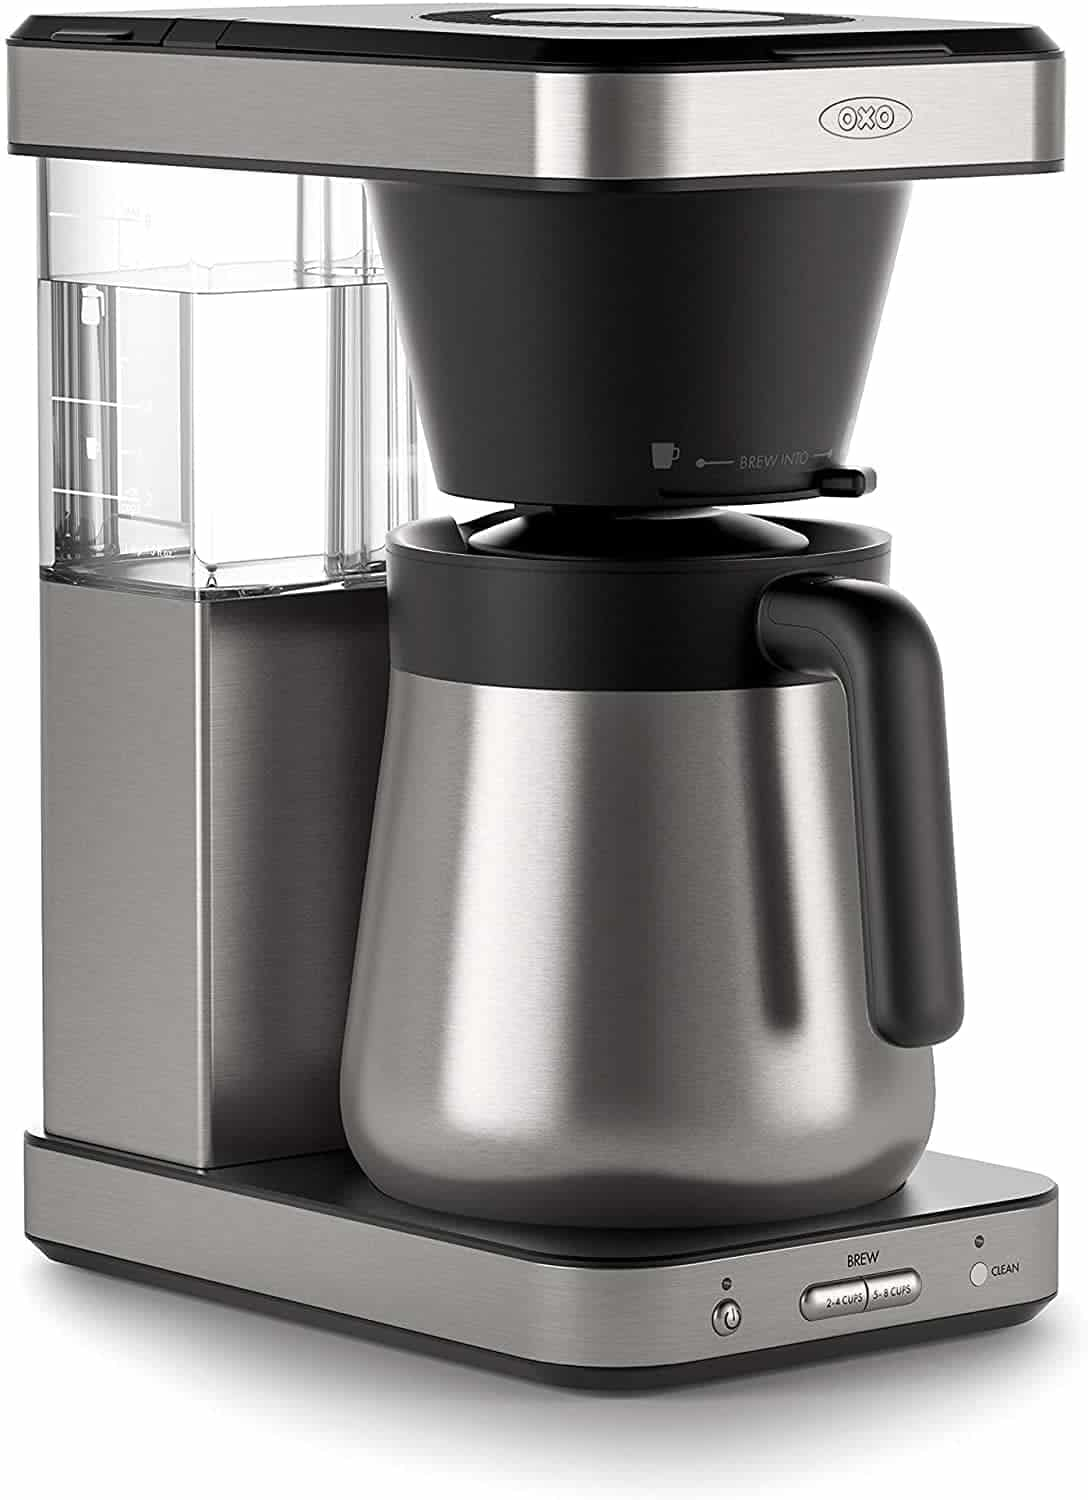 OXO Barista 8-Cup Coffee Maker